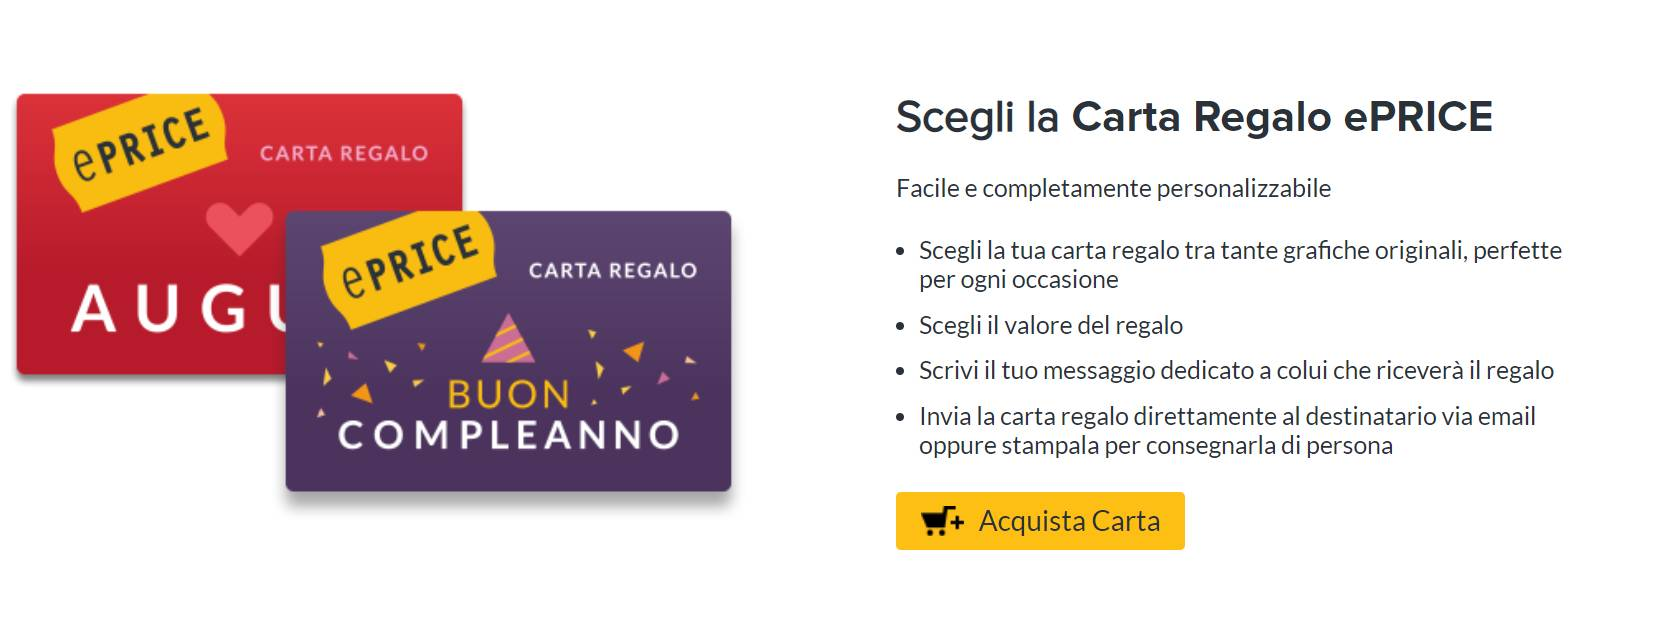 carte regalo ePrice